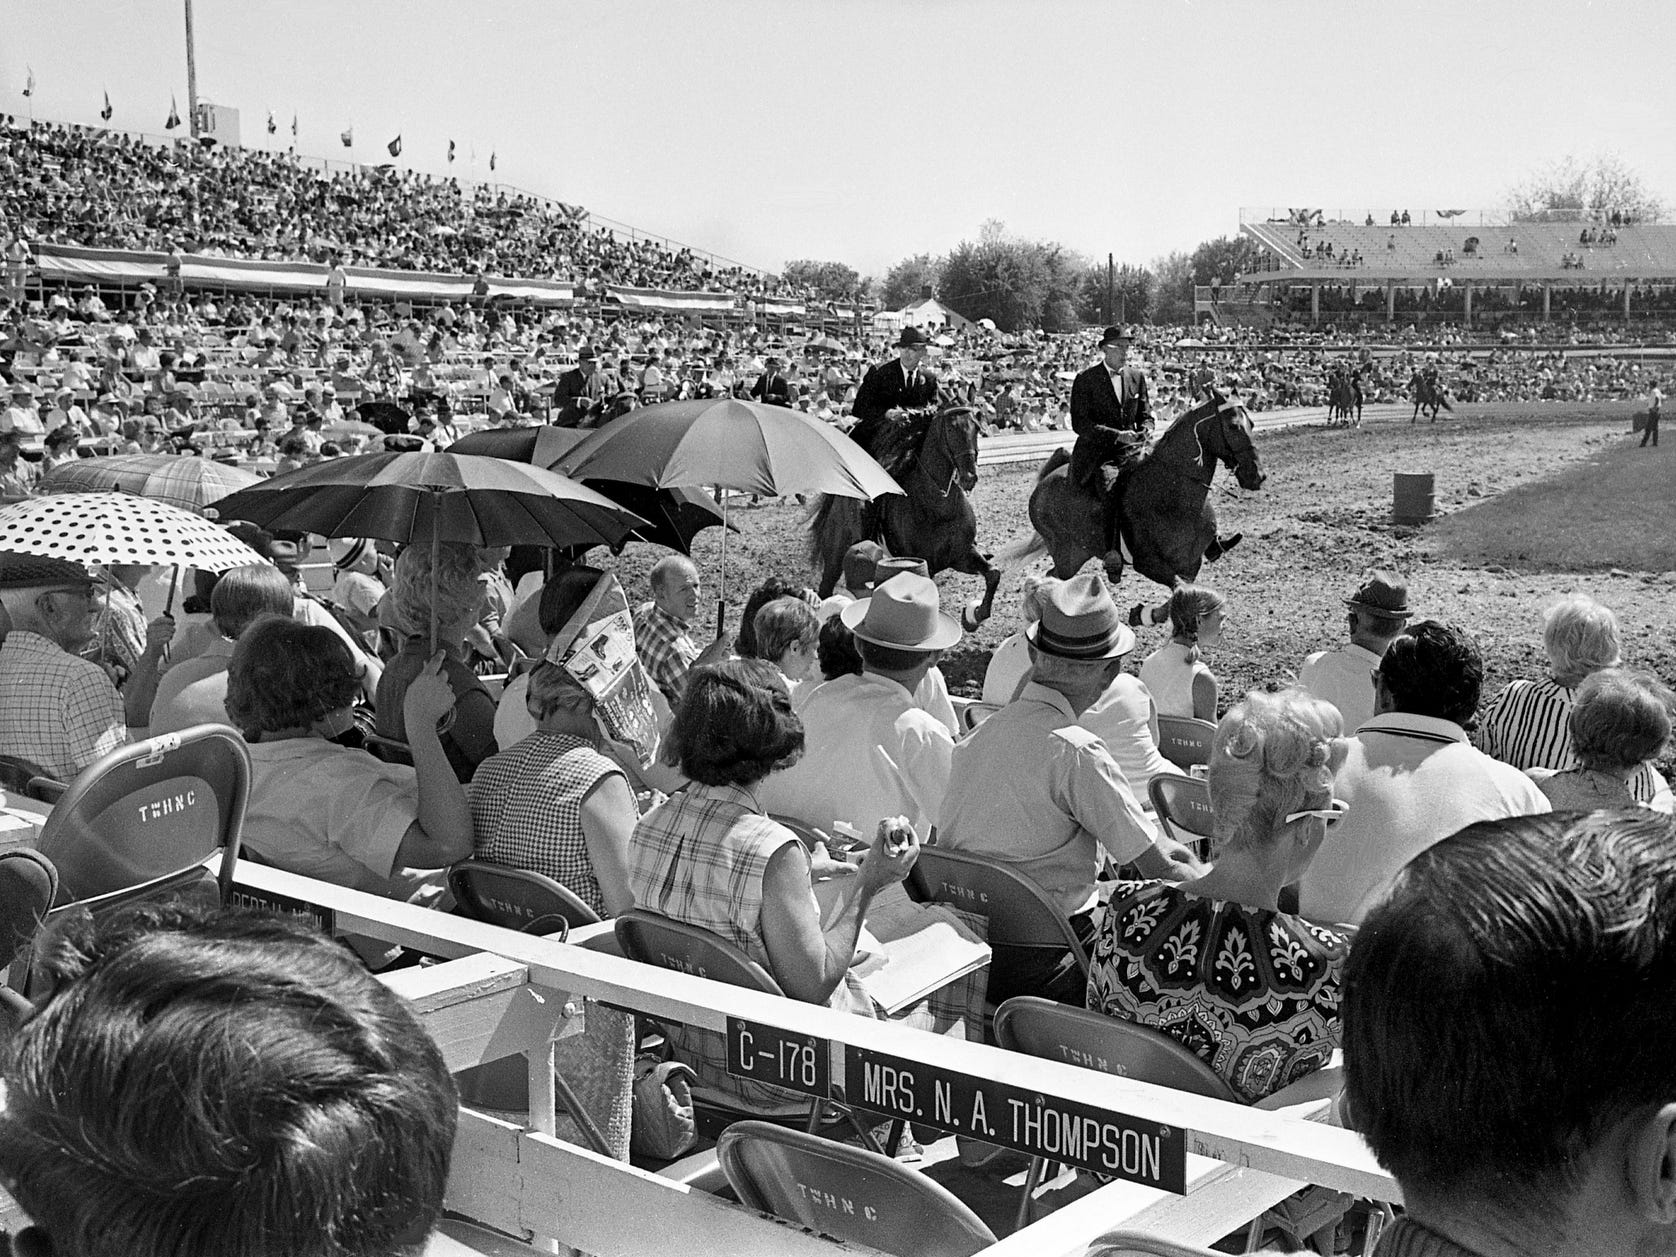 Thousands of sun-drenched fans watch the action during the 30th annual Tennessee Walking Horse National Celebration on Sept. 6, 1968, in Shelbyville, Tenn.